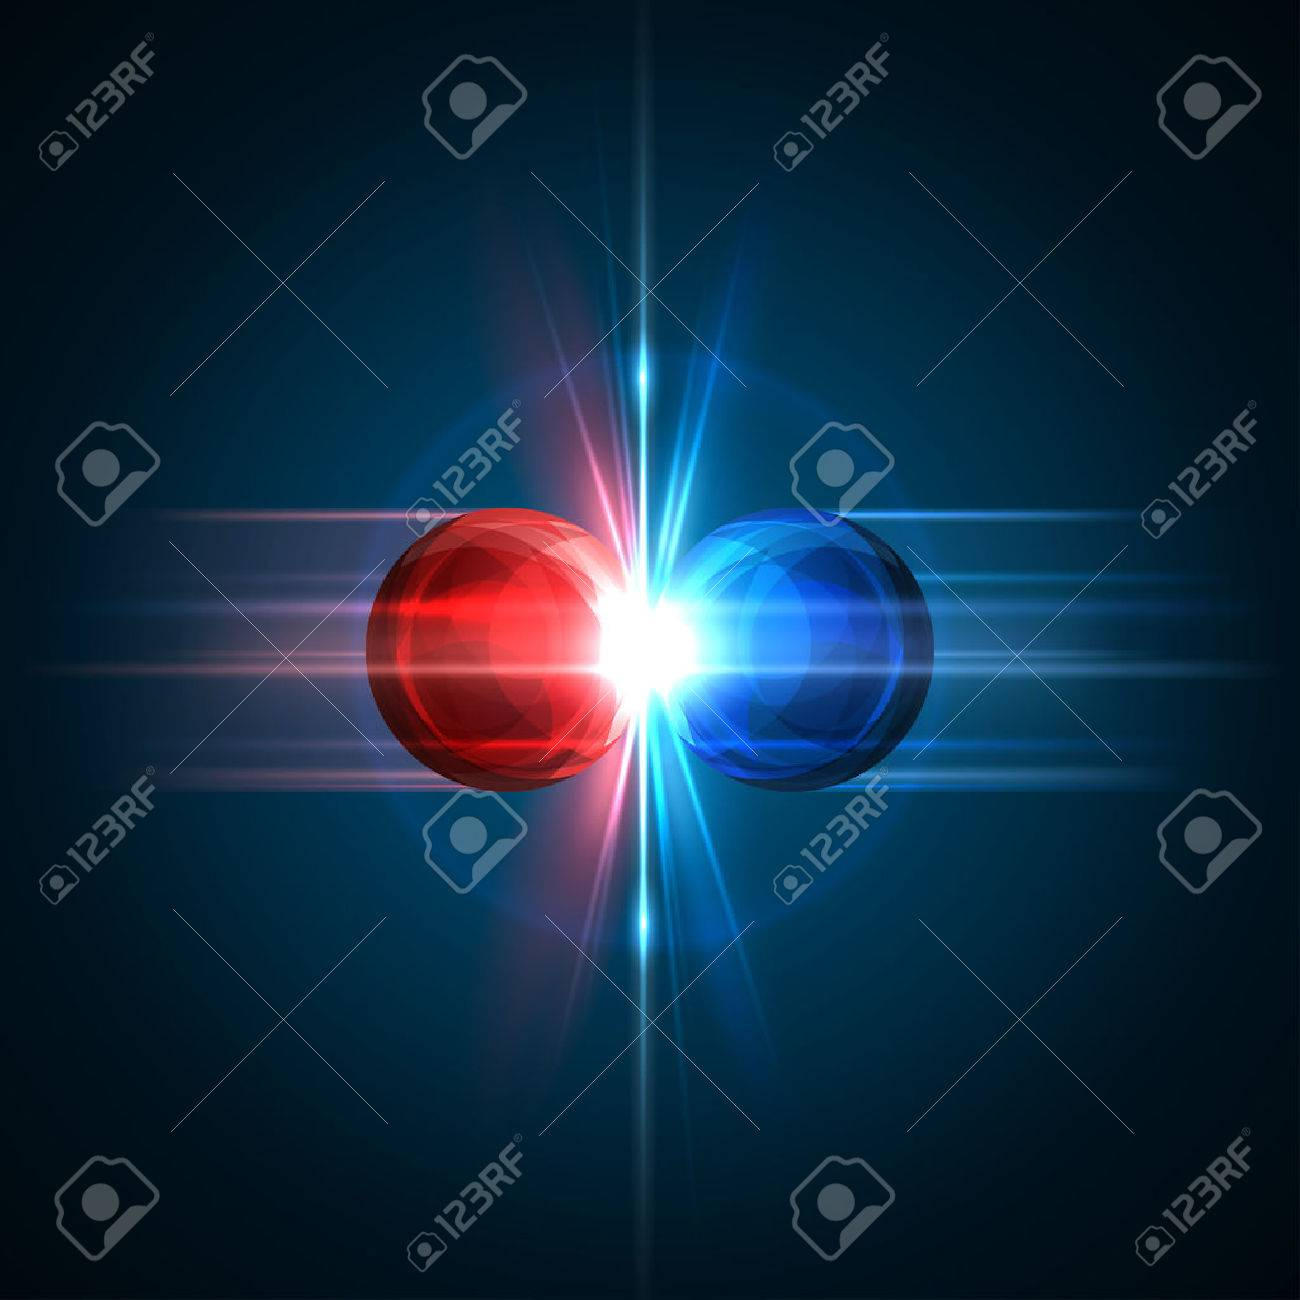 Frozen moment of two particles collision with red and blue light. Vector illustration. Explosion concept. Abstract molecules impact on black background. Atomic Power. Nuclear reactions concept. - 54940281